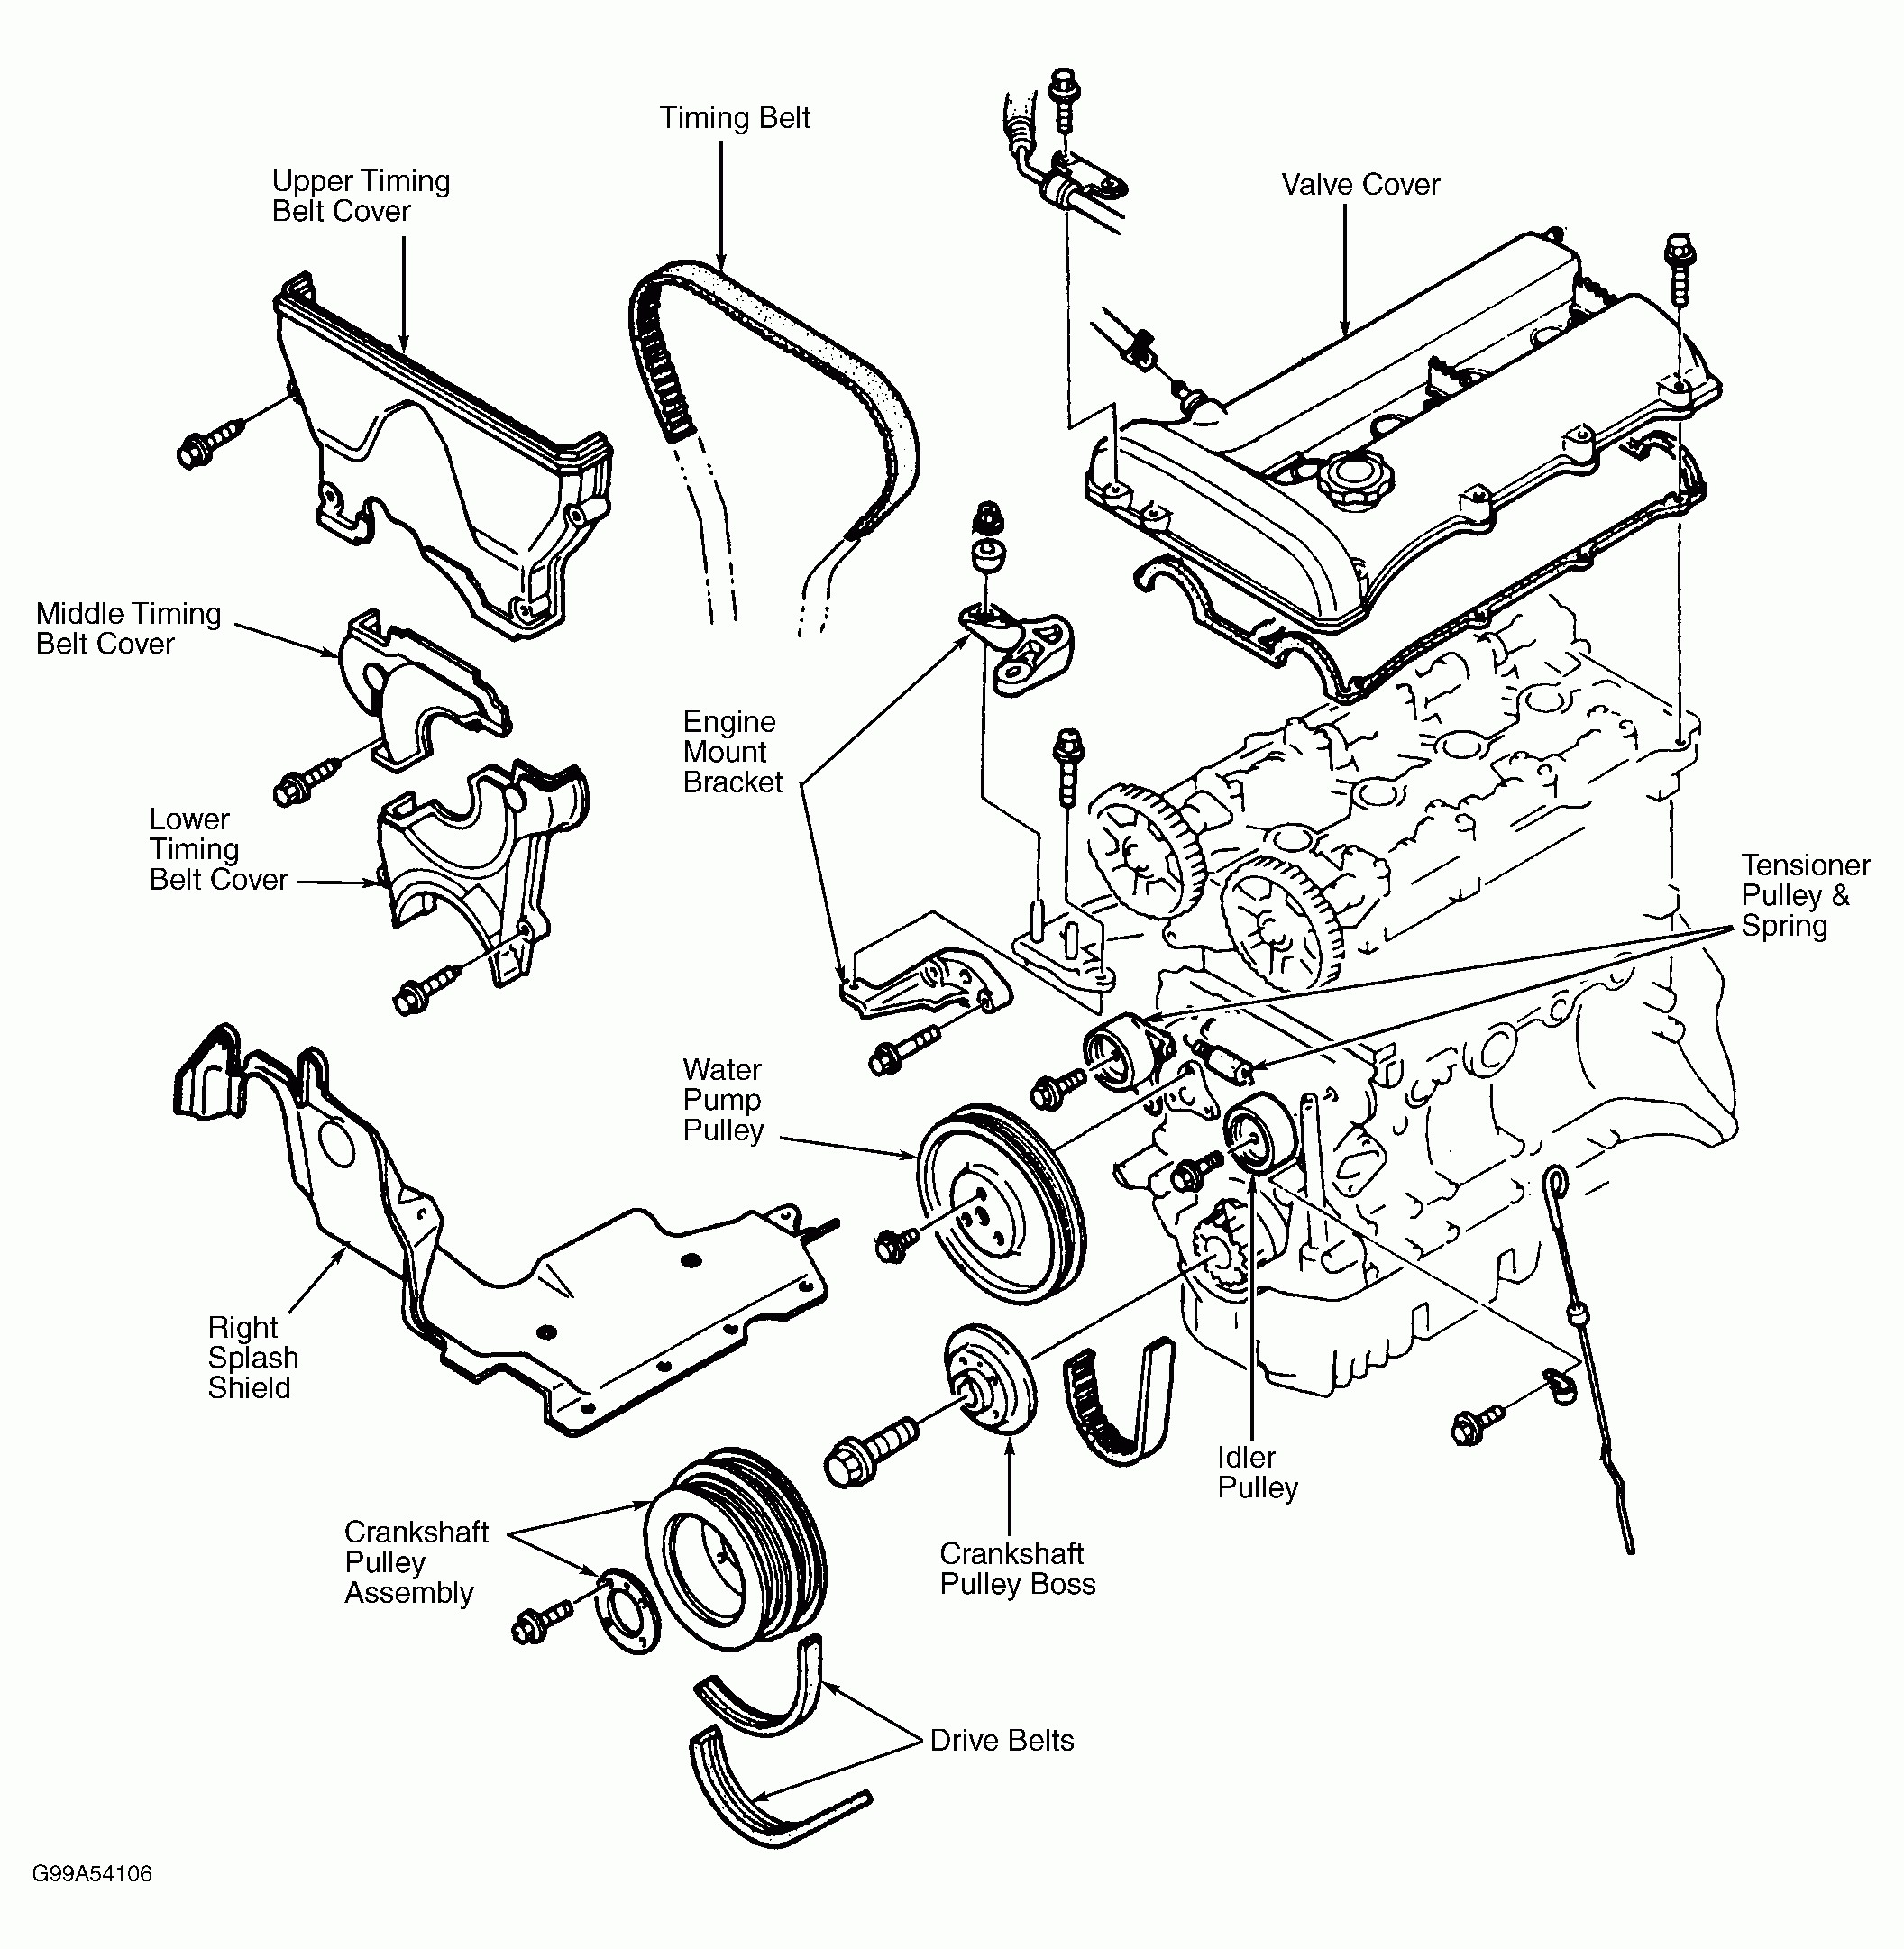 88 Mazda 323 Wiring Diagram Opinions About Wiring Diagram \u2022 1999 Chevy Monte  Carlo Engine Diagram 1999 Mazda Protege Engine Diagram